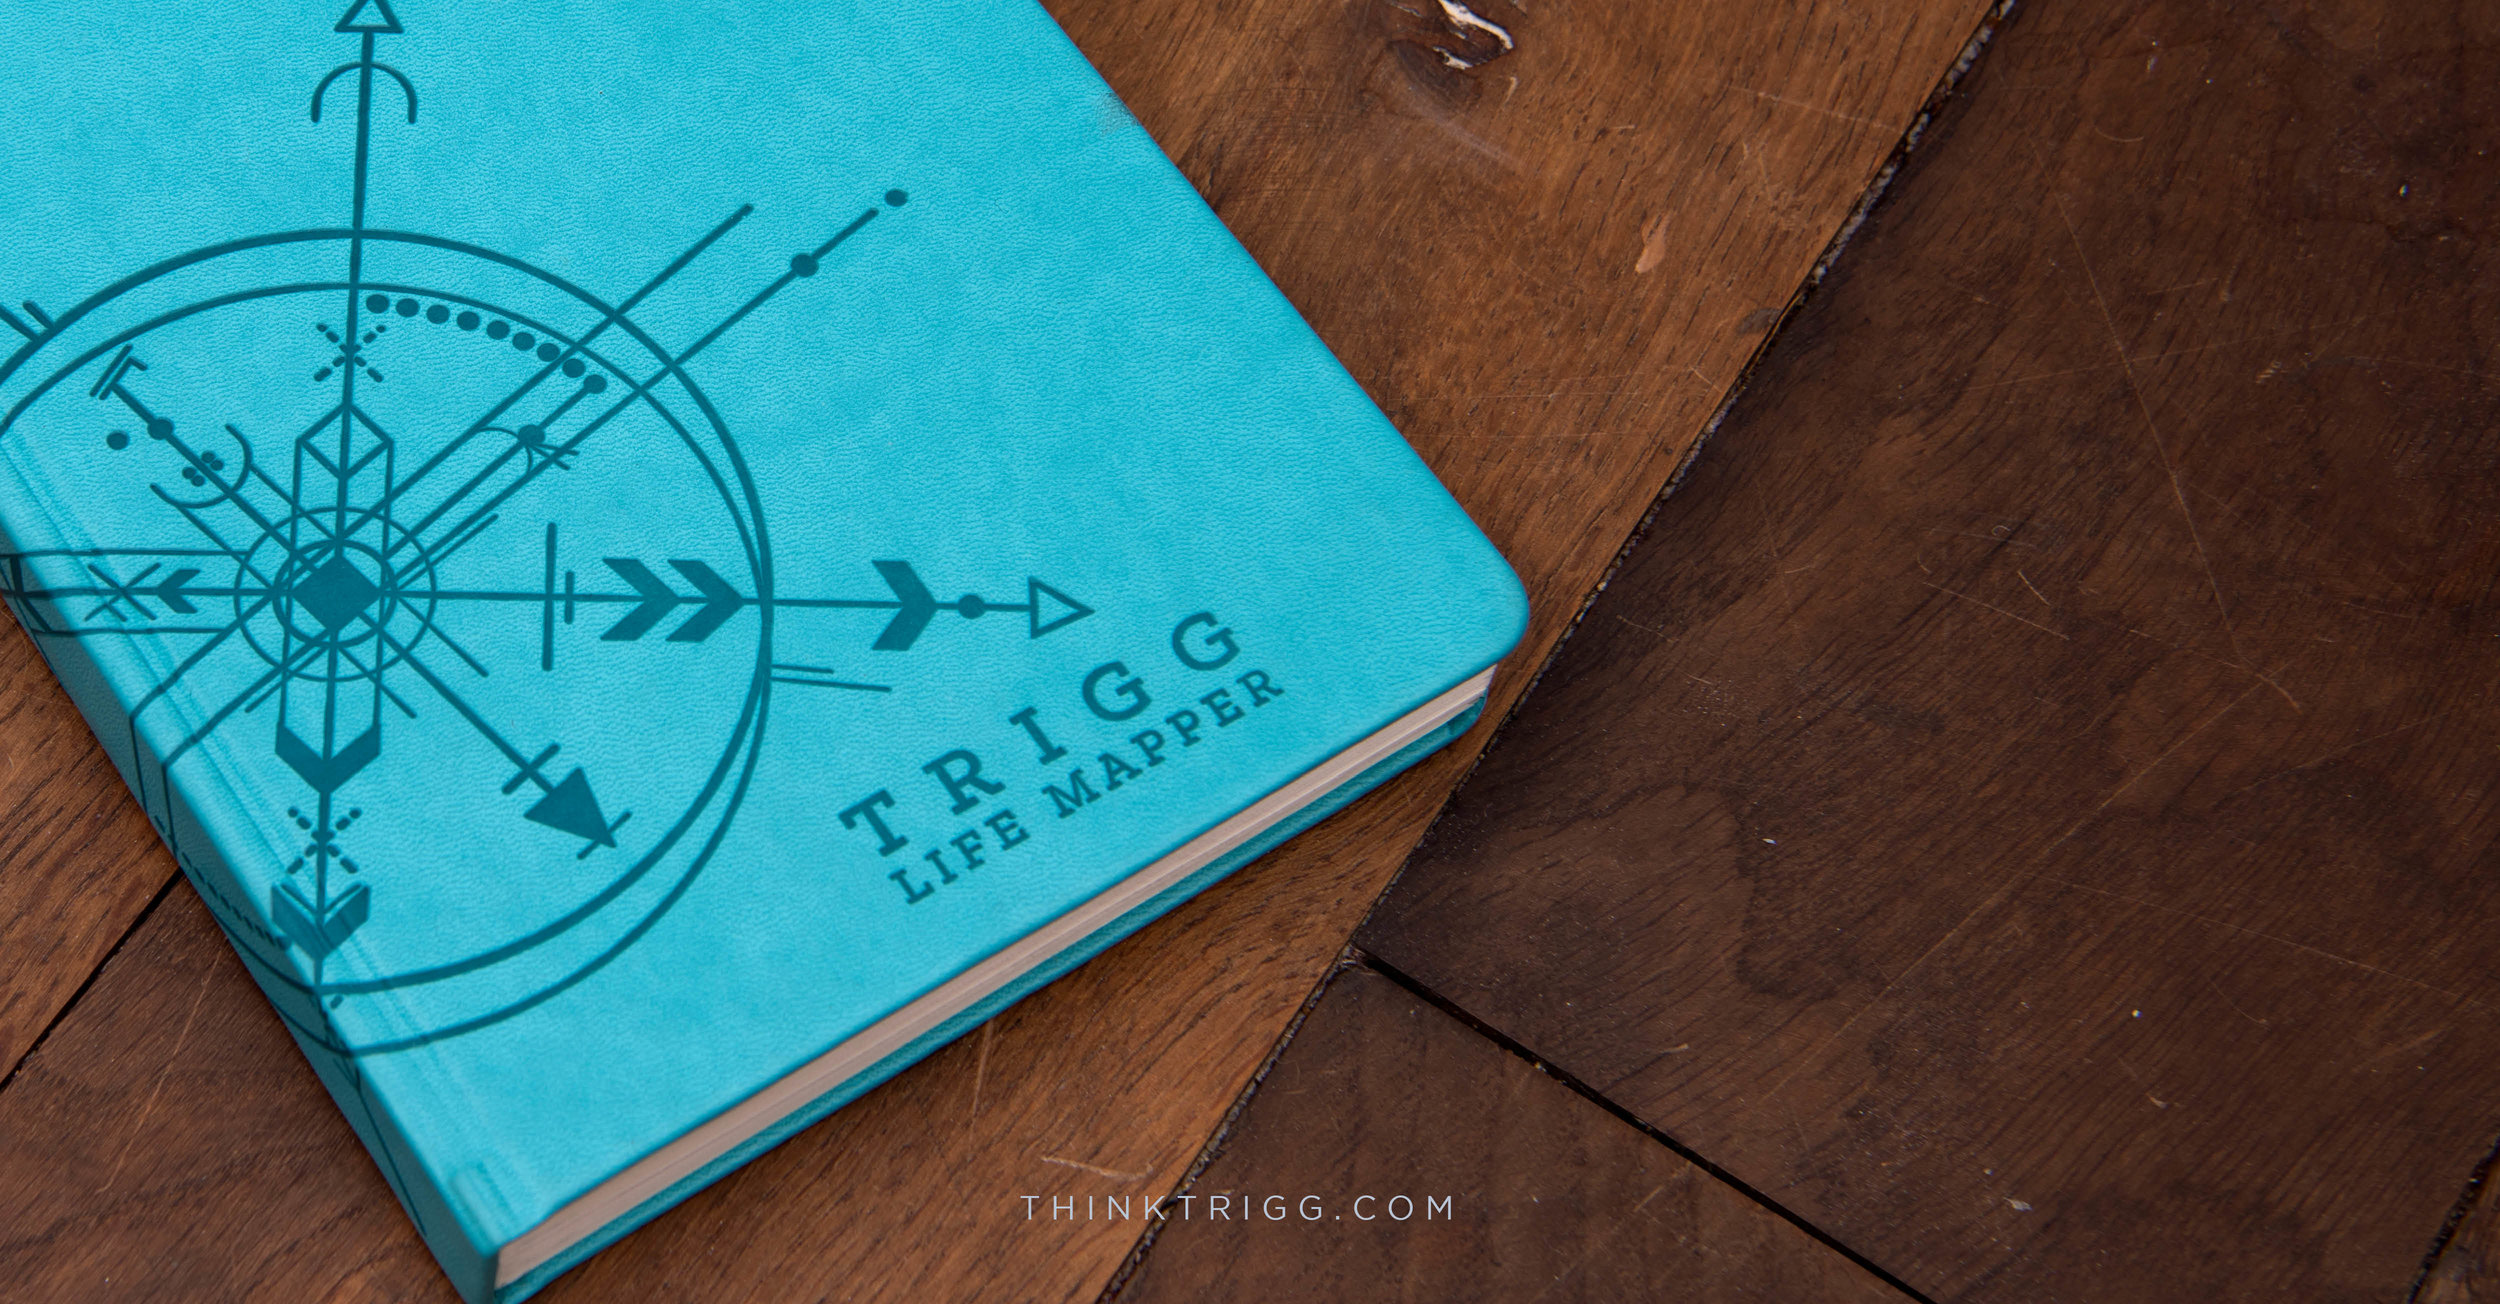 Trigg Life Mapper:'a productivity diary that transforms your goals into success... bringing planning, habit & mindfulness to a fresh journal format'